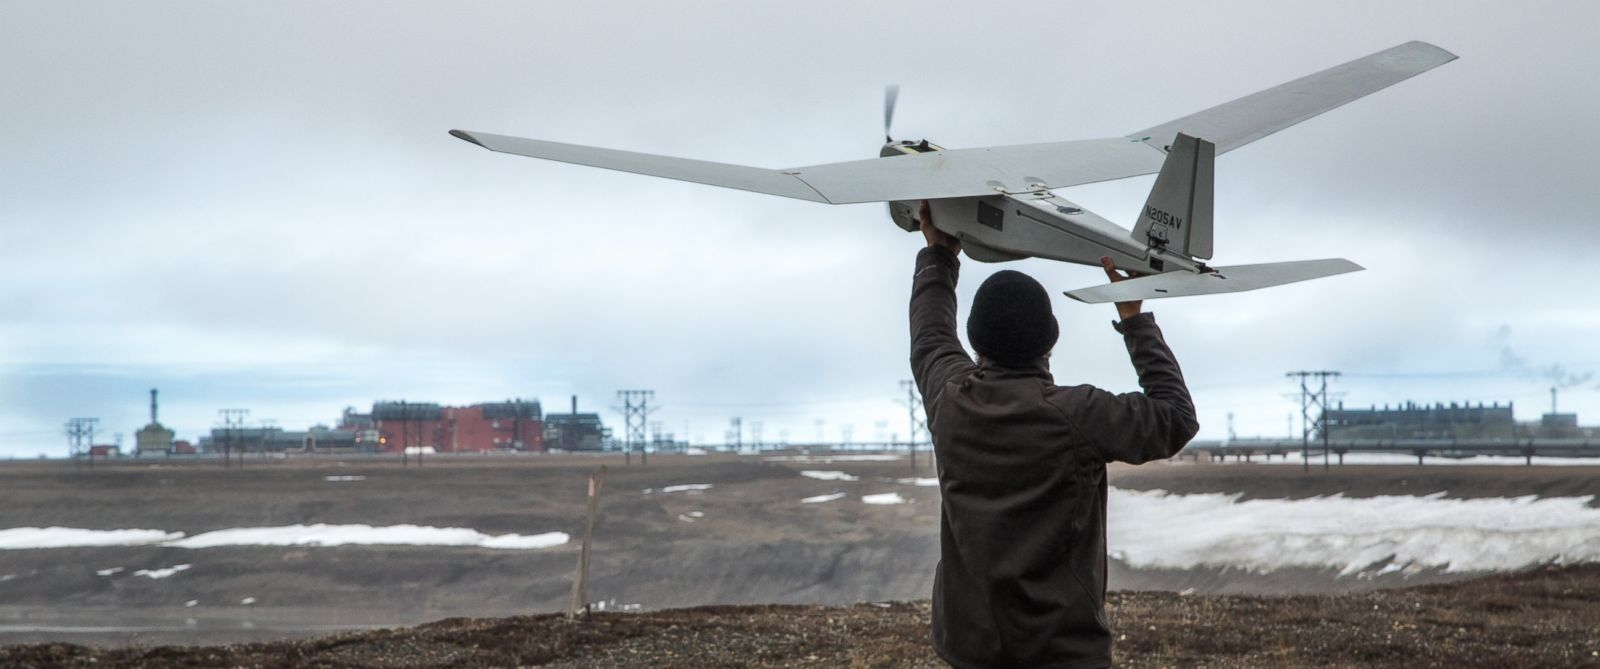 PHOTO: The Federal Aviation Administration has given AeroVironment and BP approval for the first commercial drone flight over land.